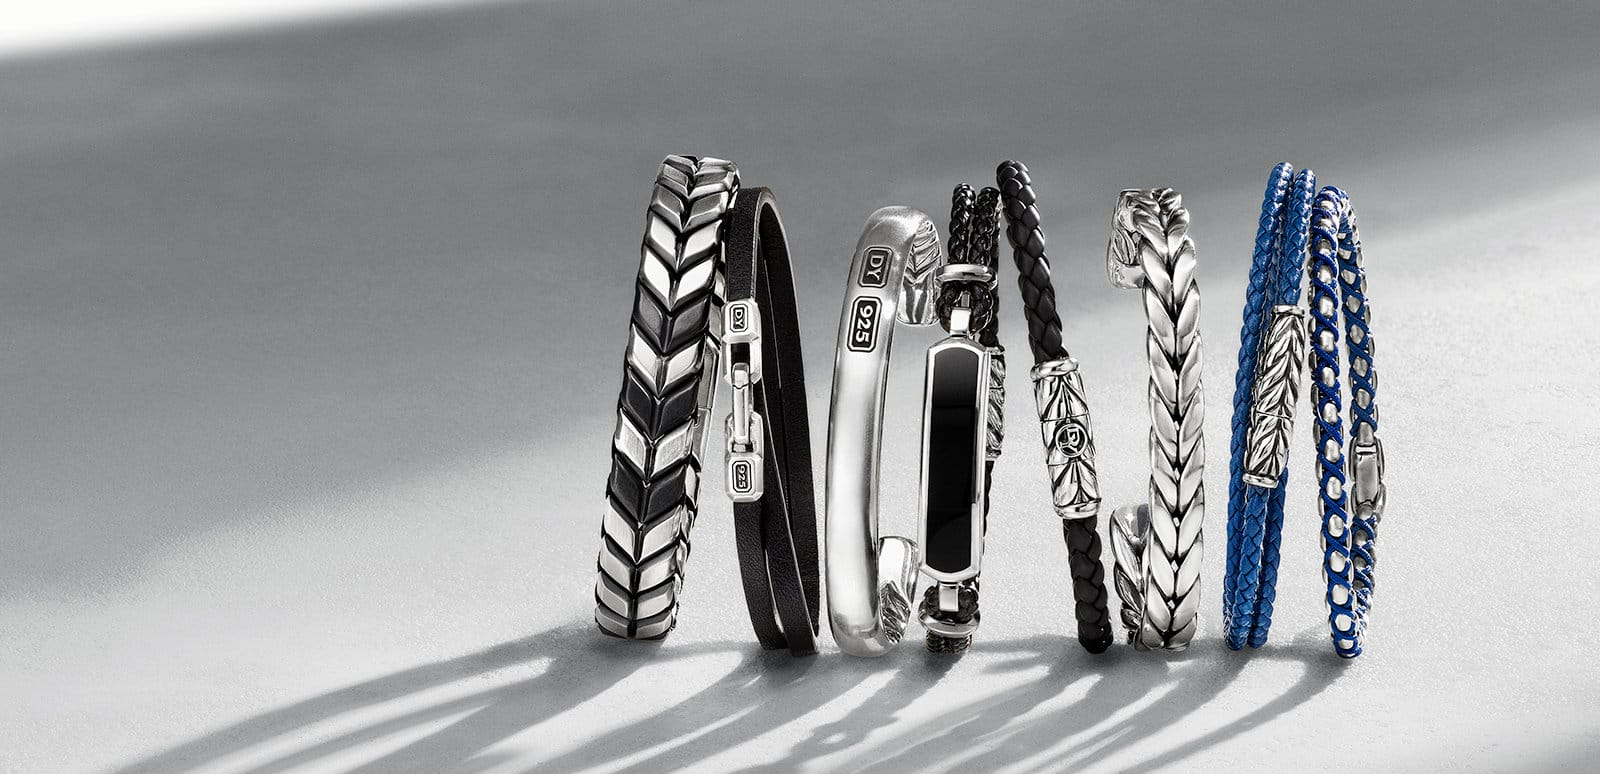 Chevron, Streamline, Exotic Stone, Chevron and Chain bracelets in sterling silver with or without black titanium; black leather with sterling silver; woven black leather with sterling silver and black onyx; woven black rubber with sterling silver; woven blue leather with sterling silver; and sterling silver and blue nylon, in a row on a textured white surface.